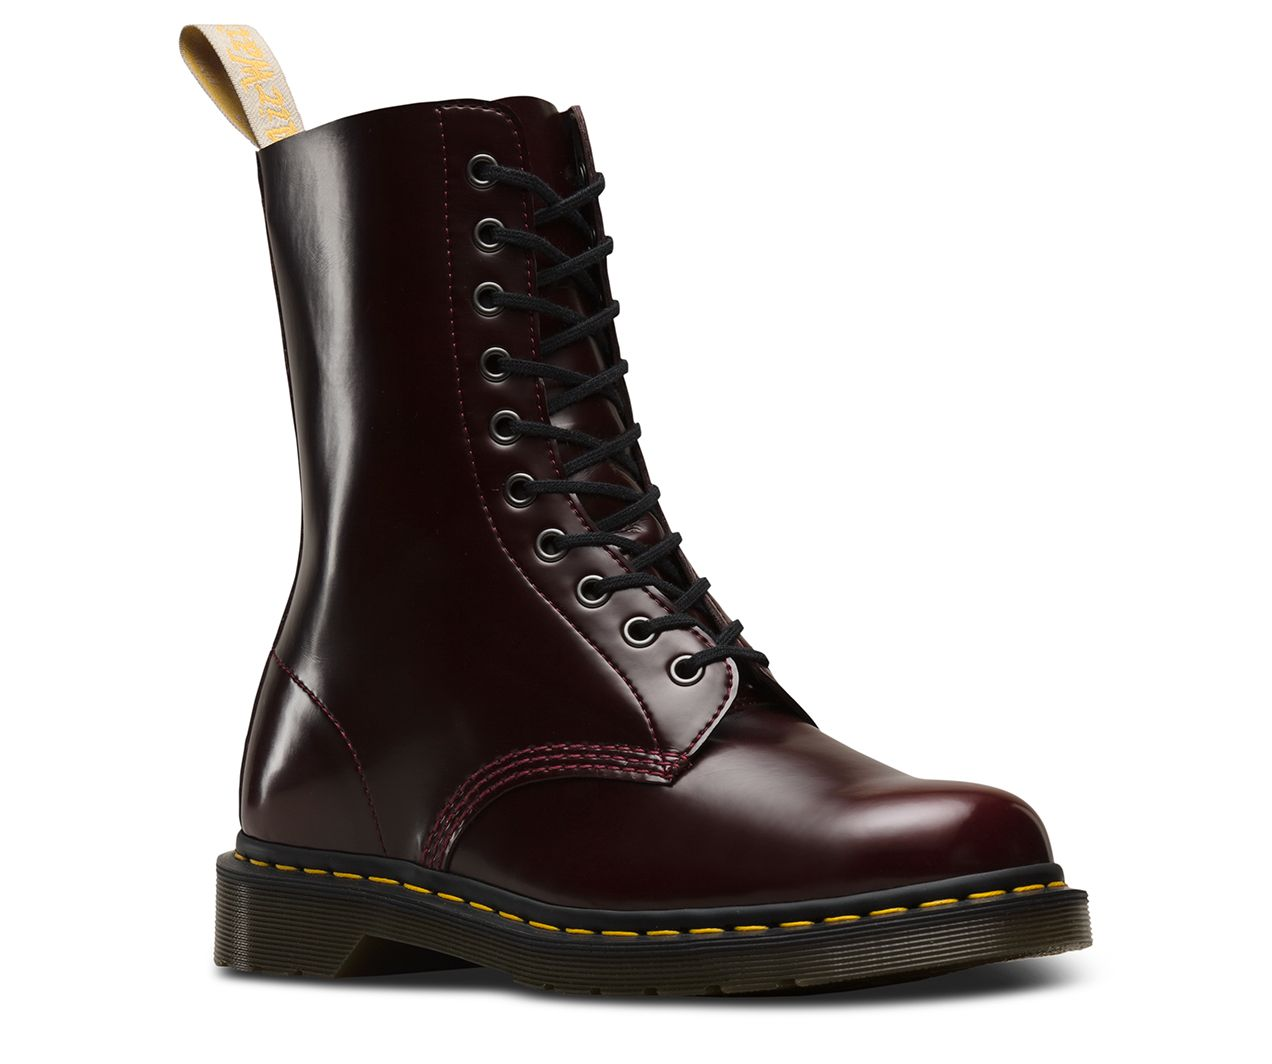 Dr martens 1490 10 eye boot + FREE SHIPPING |